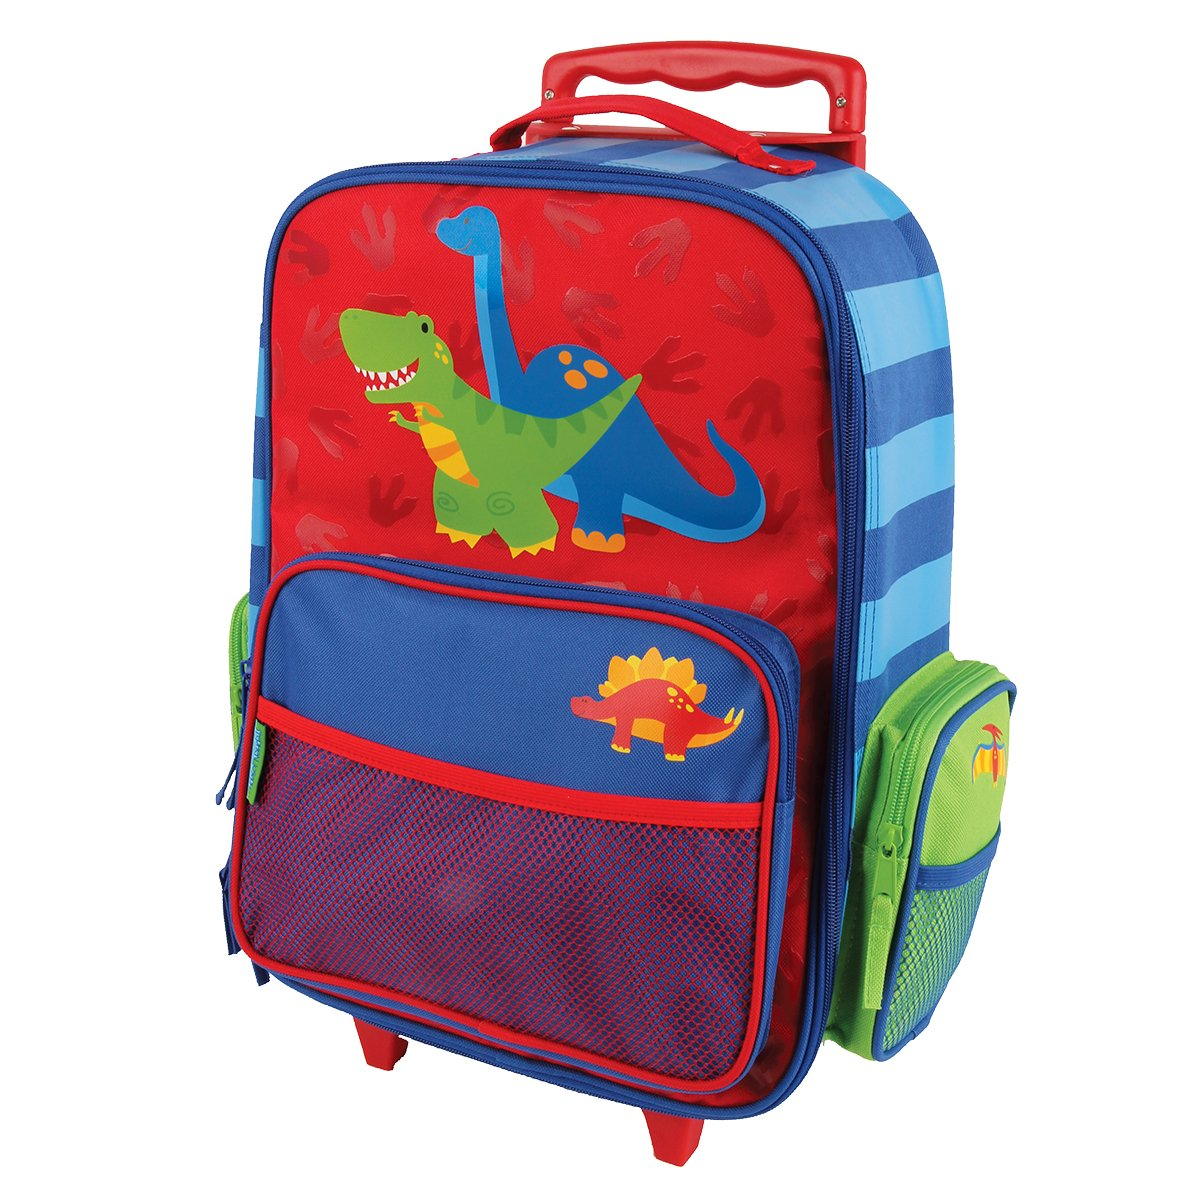 Stephen Joseph Classic Rolling Luggage, Red Dino by Stephen Joseph